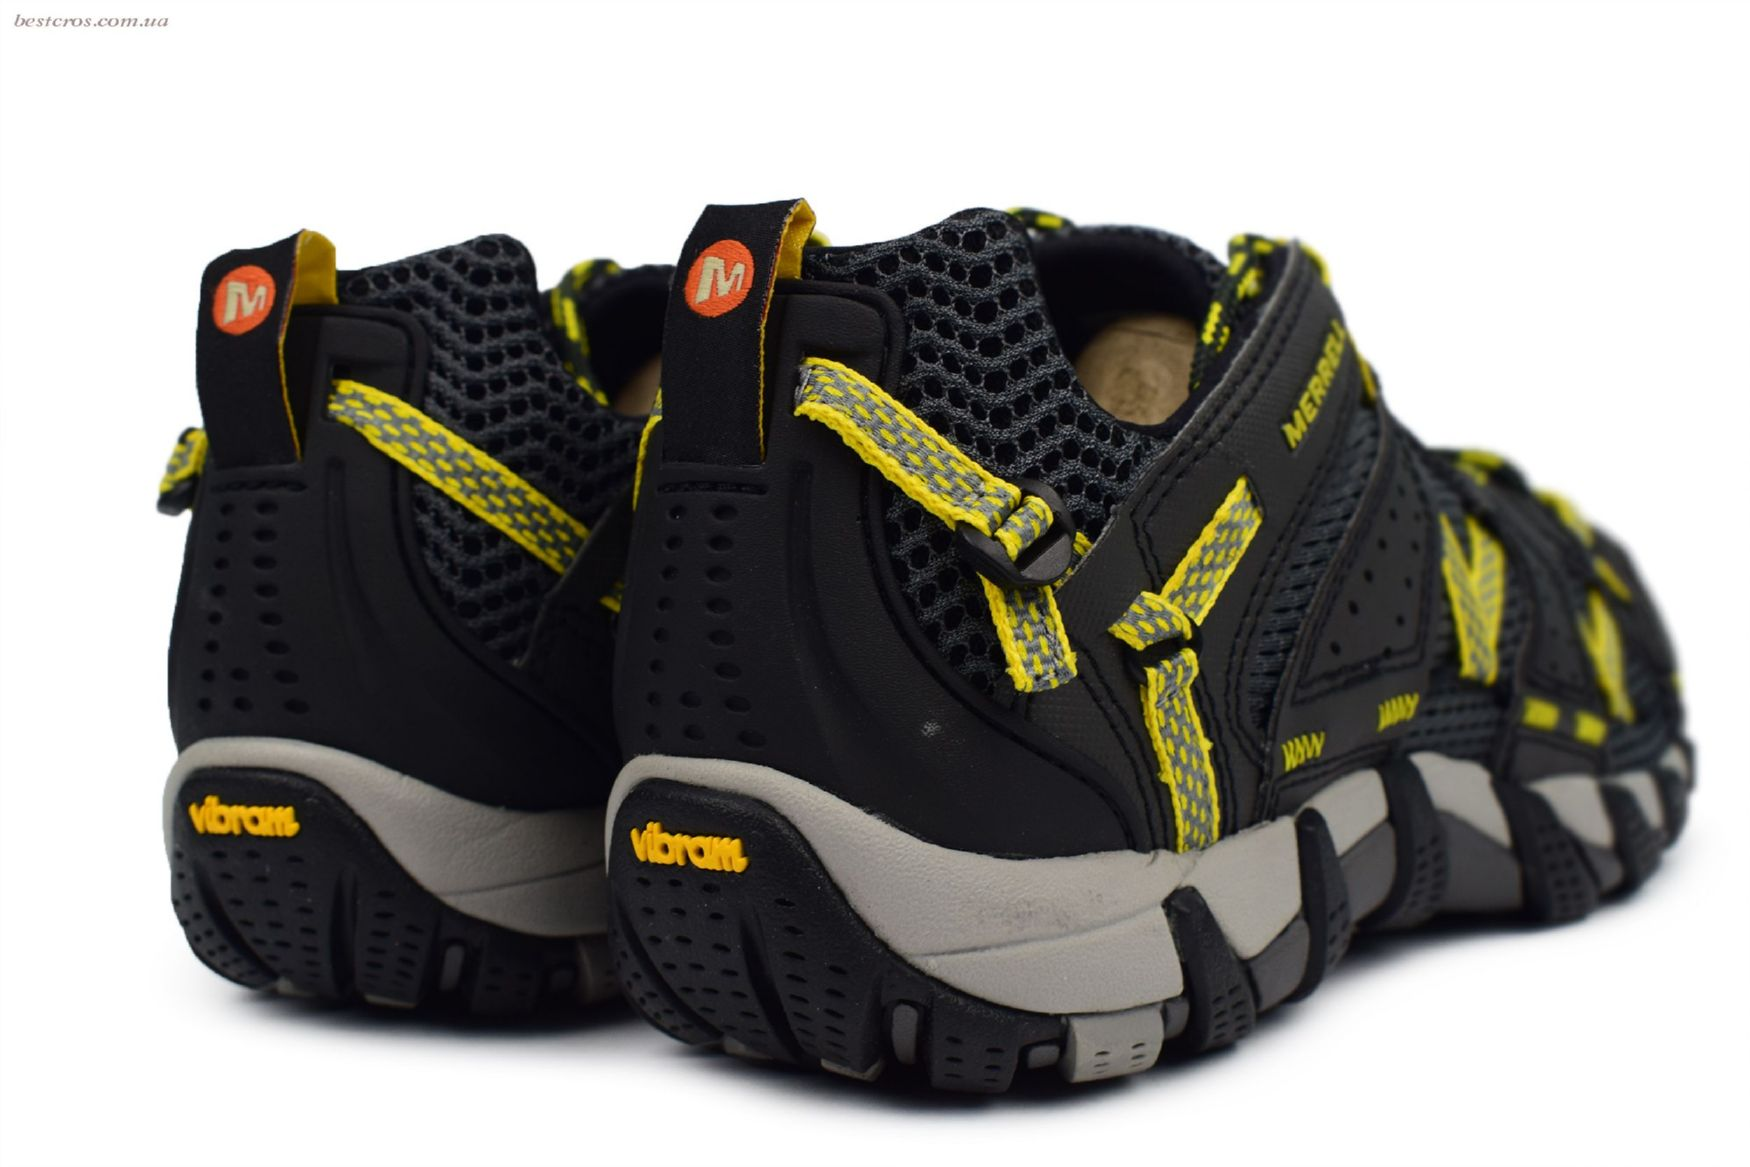 Мужские кроссовки Merrell Waterpro Maipo Black/Yellow - фото №5